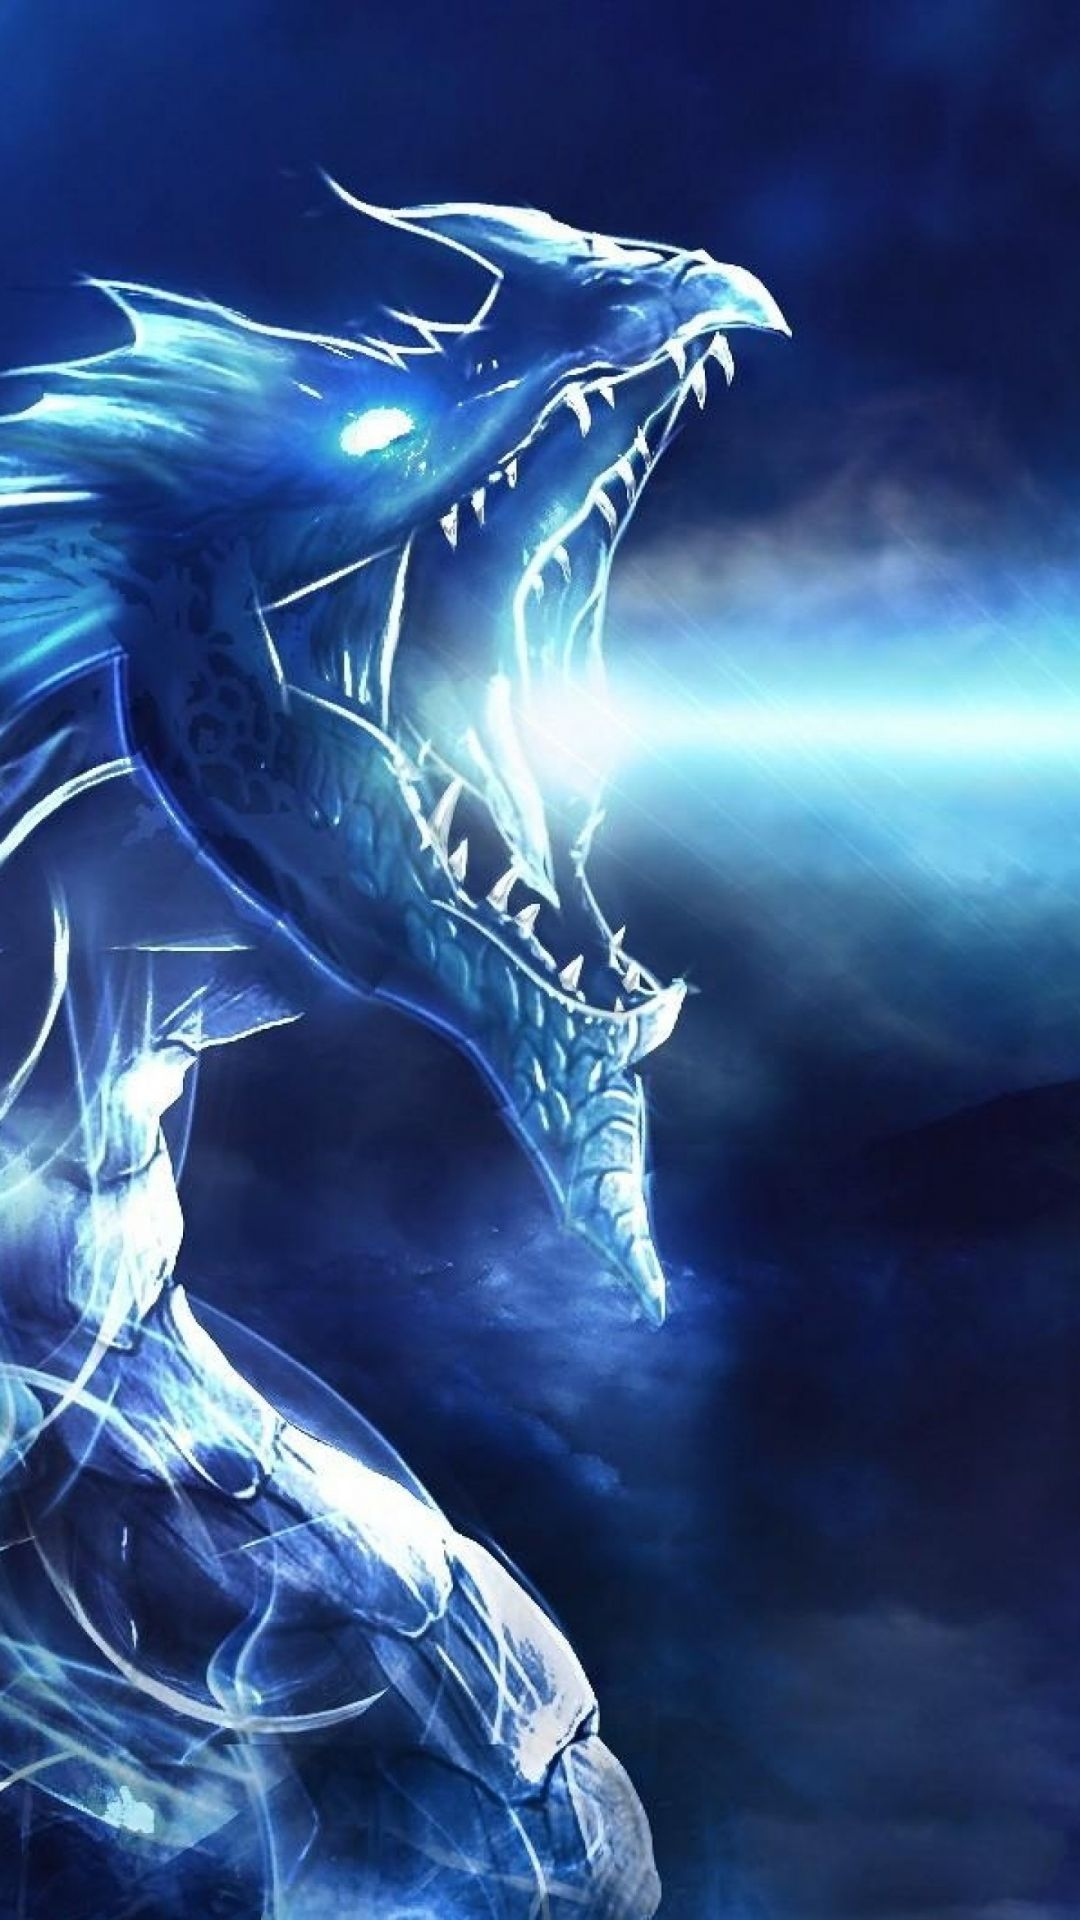 Blue Dragon Wallpaper HD - Android, iPhone, Desktop HD Backgrounds / Wallpapers (1080p, 4k) (387941) - Dreamy / Fantasy